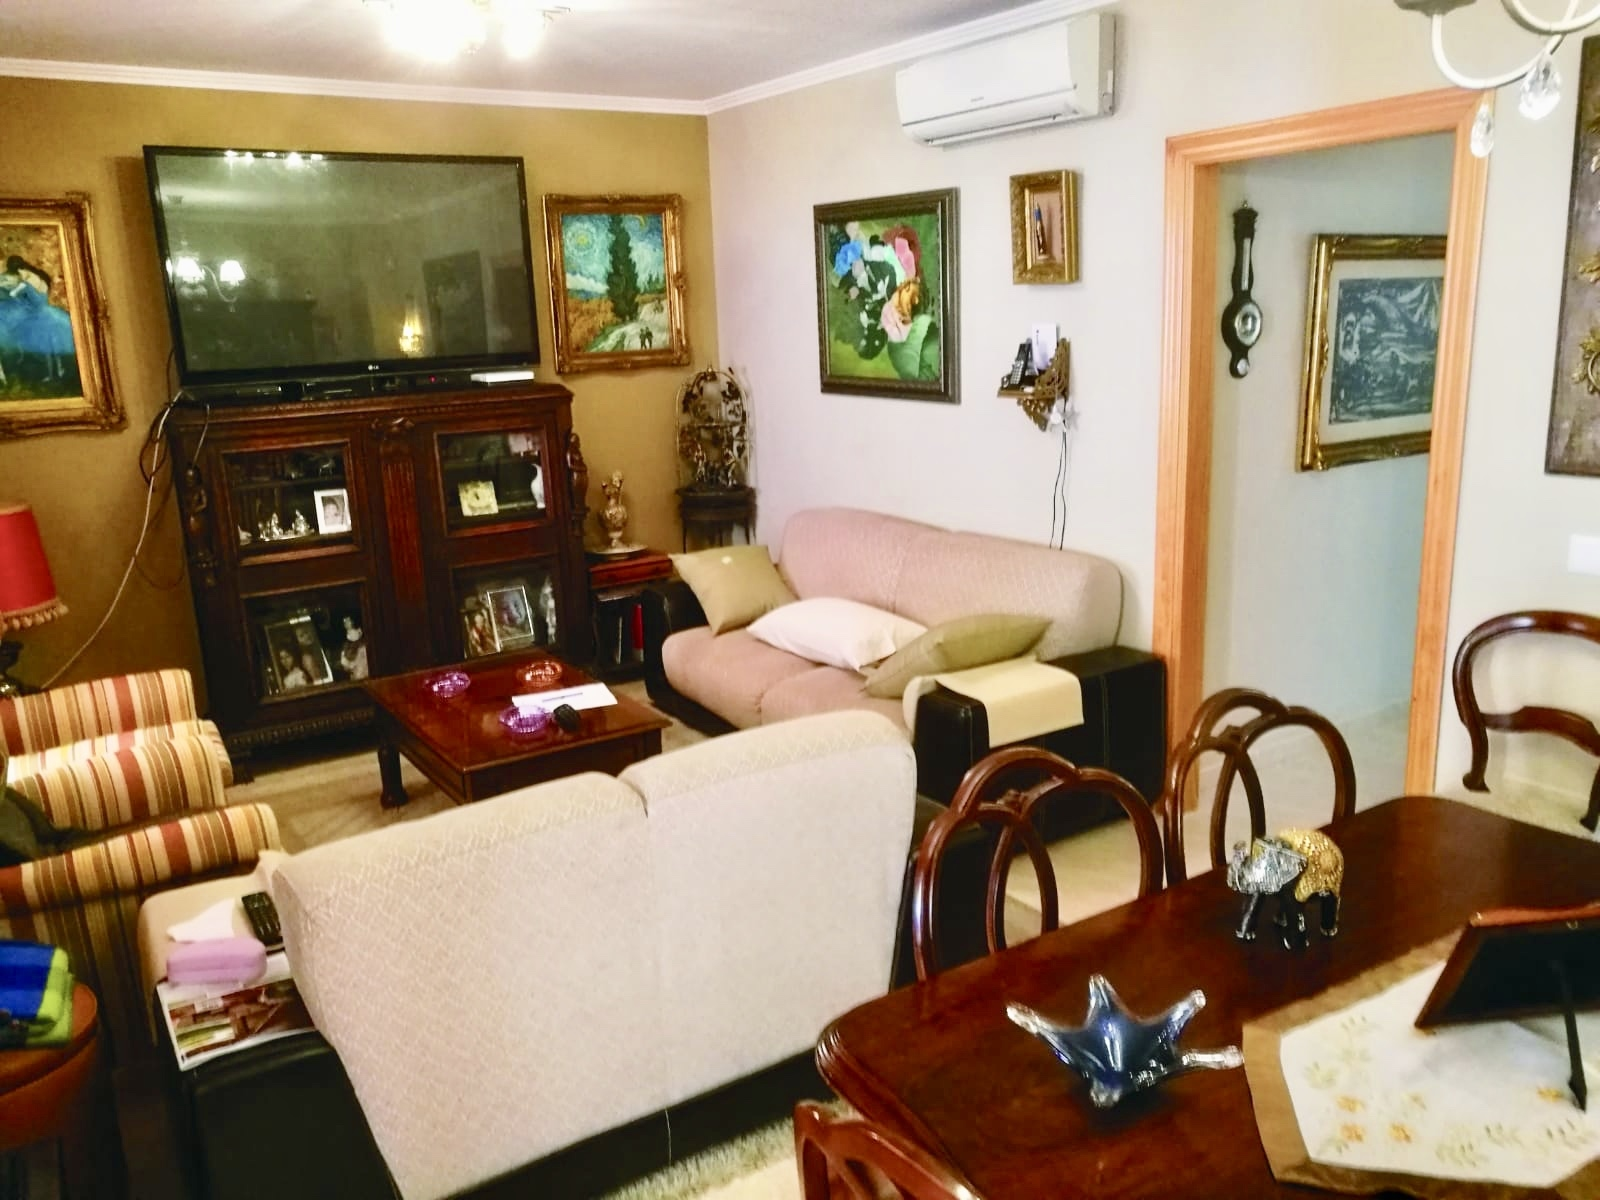 House for sale in Nerja